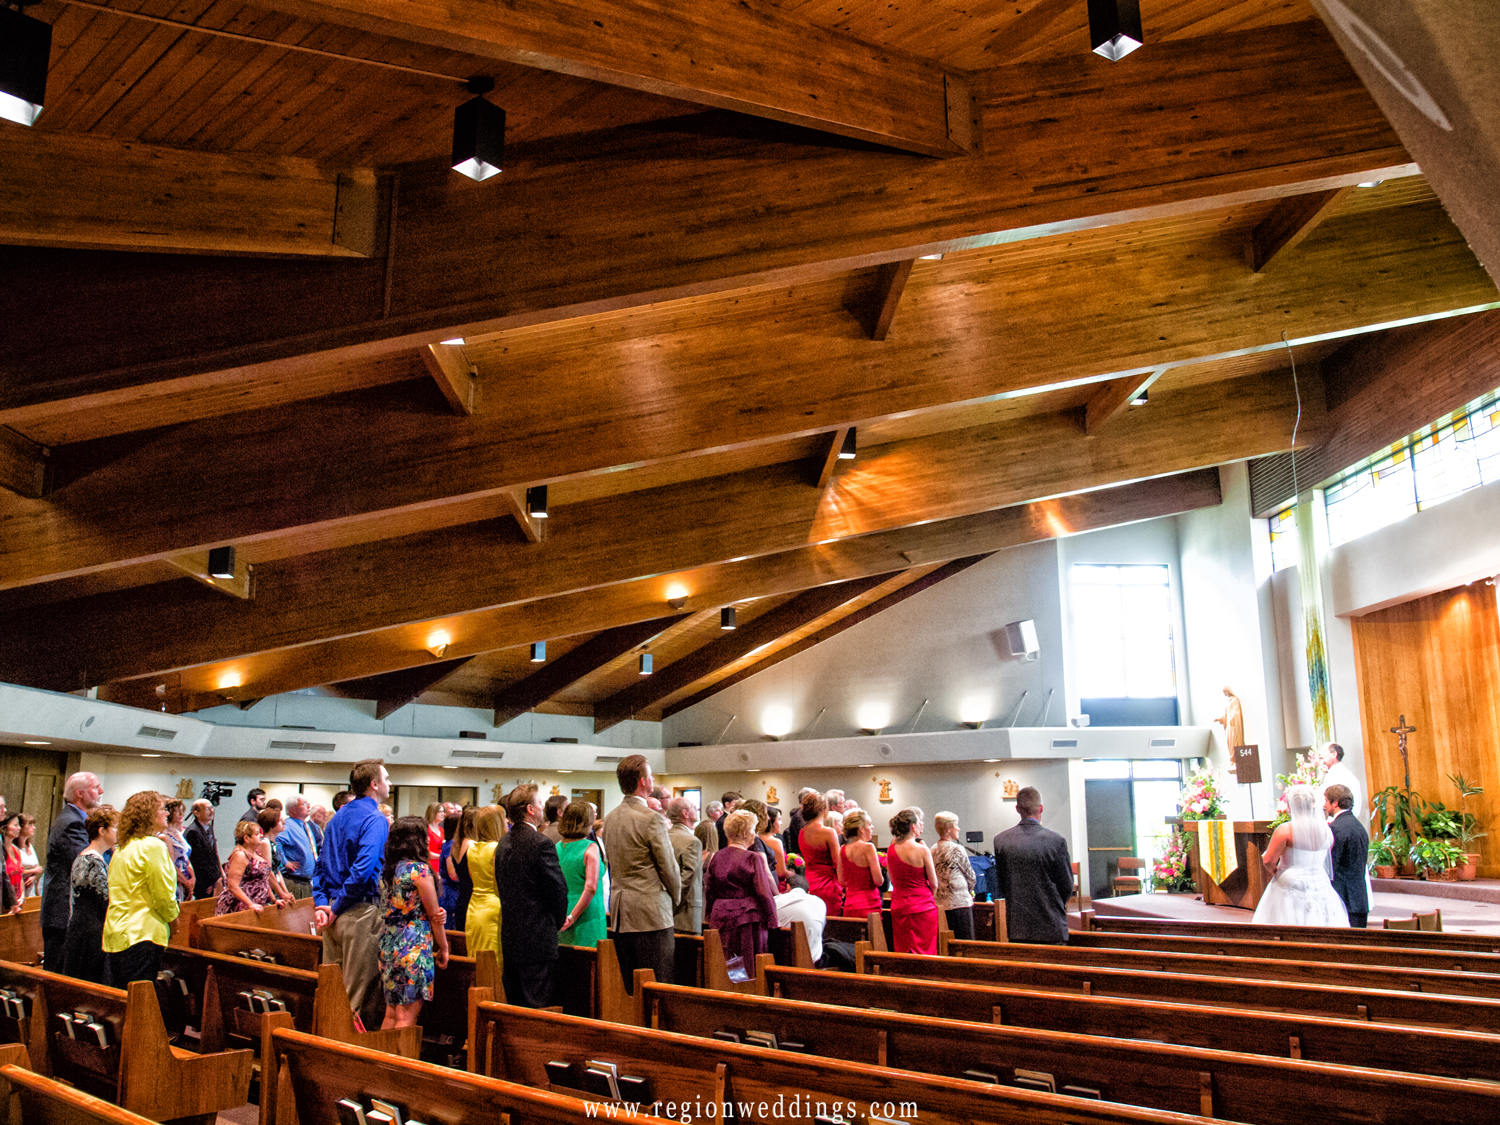 A view from the pews of St. Elizabeth Ann Seton Church in Valparaiso, Indiana.